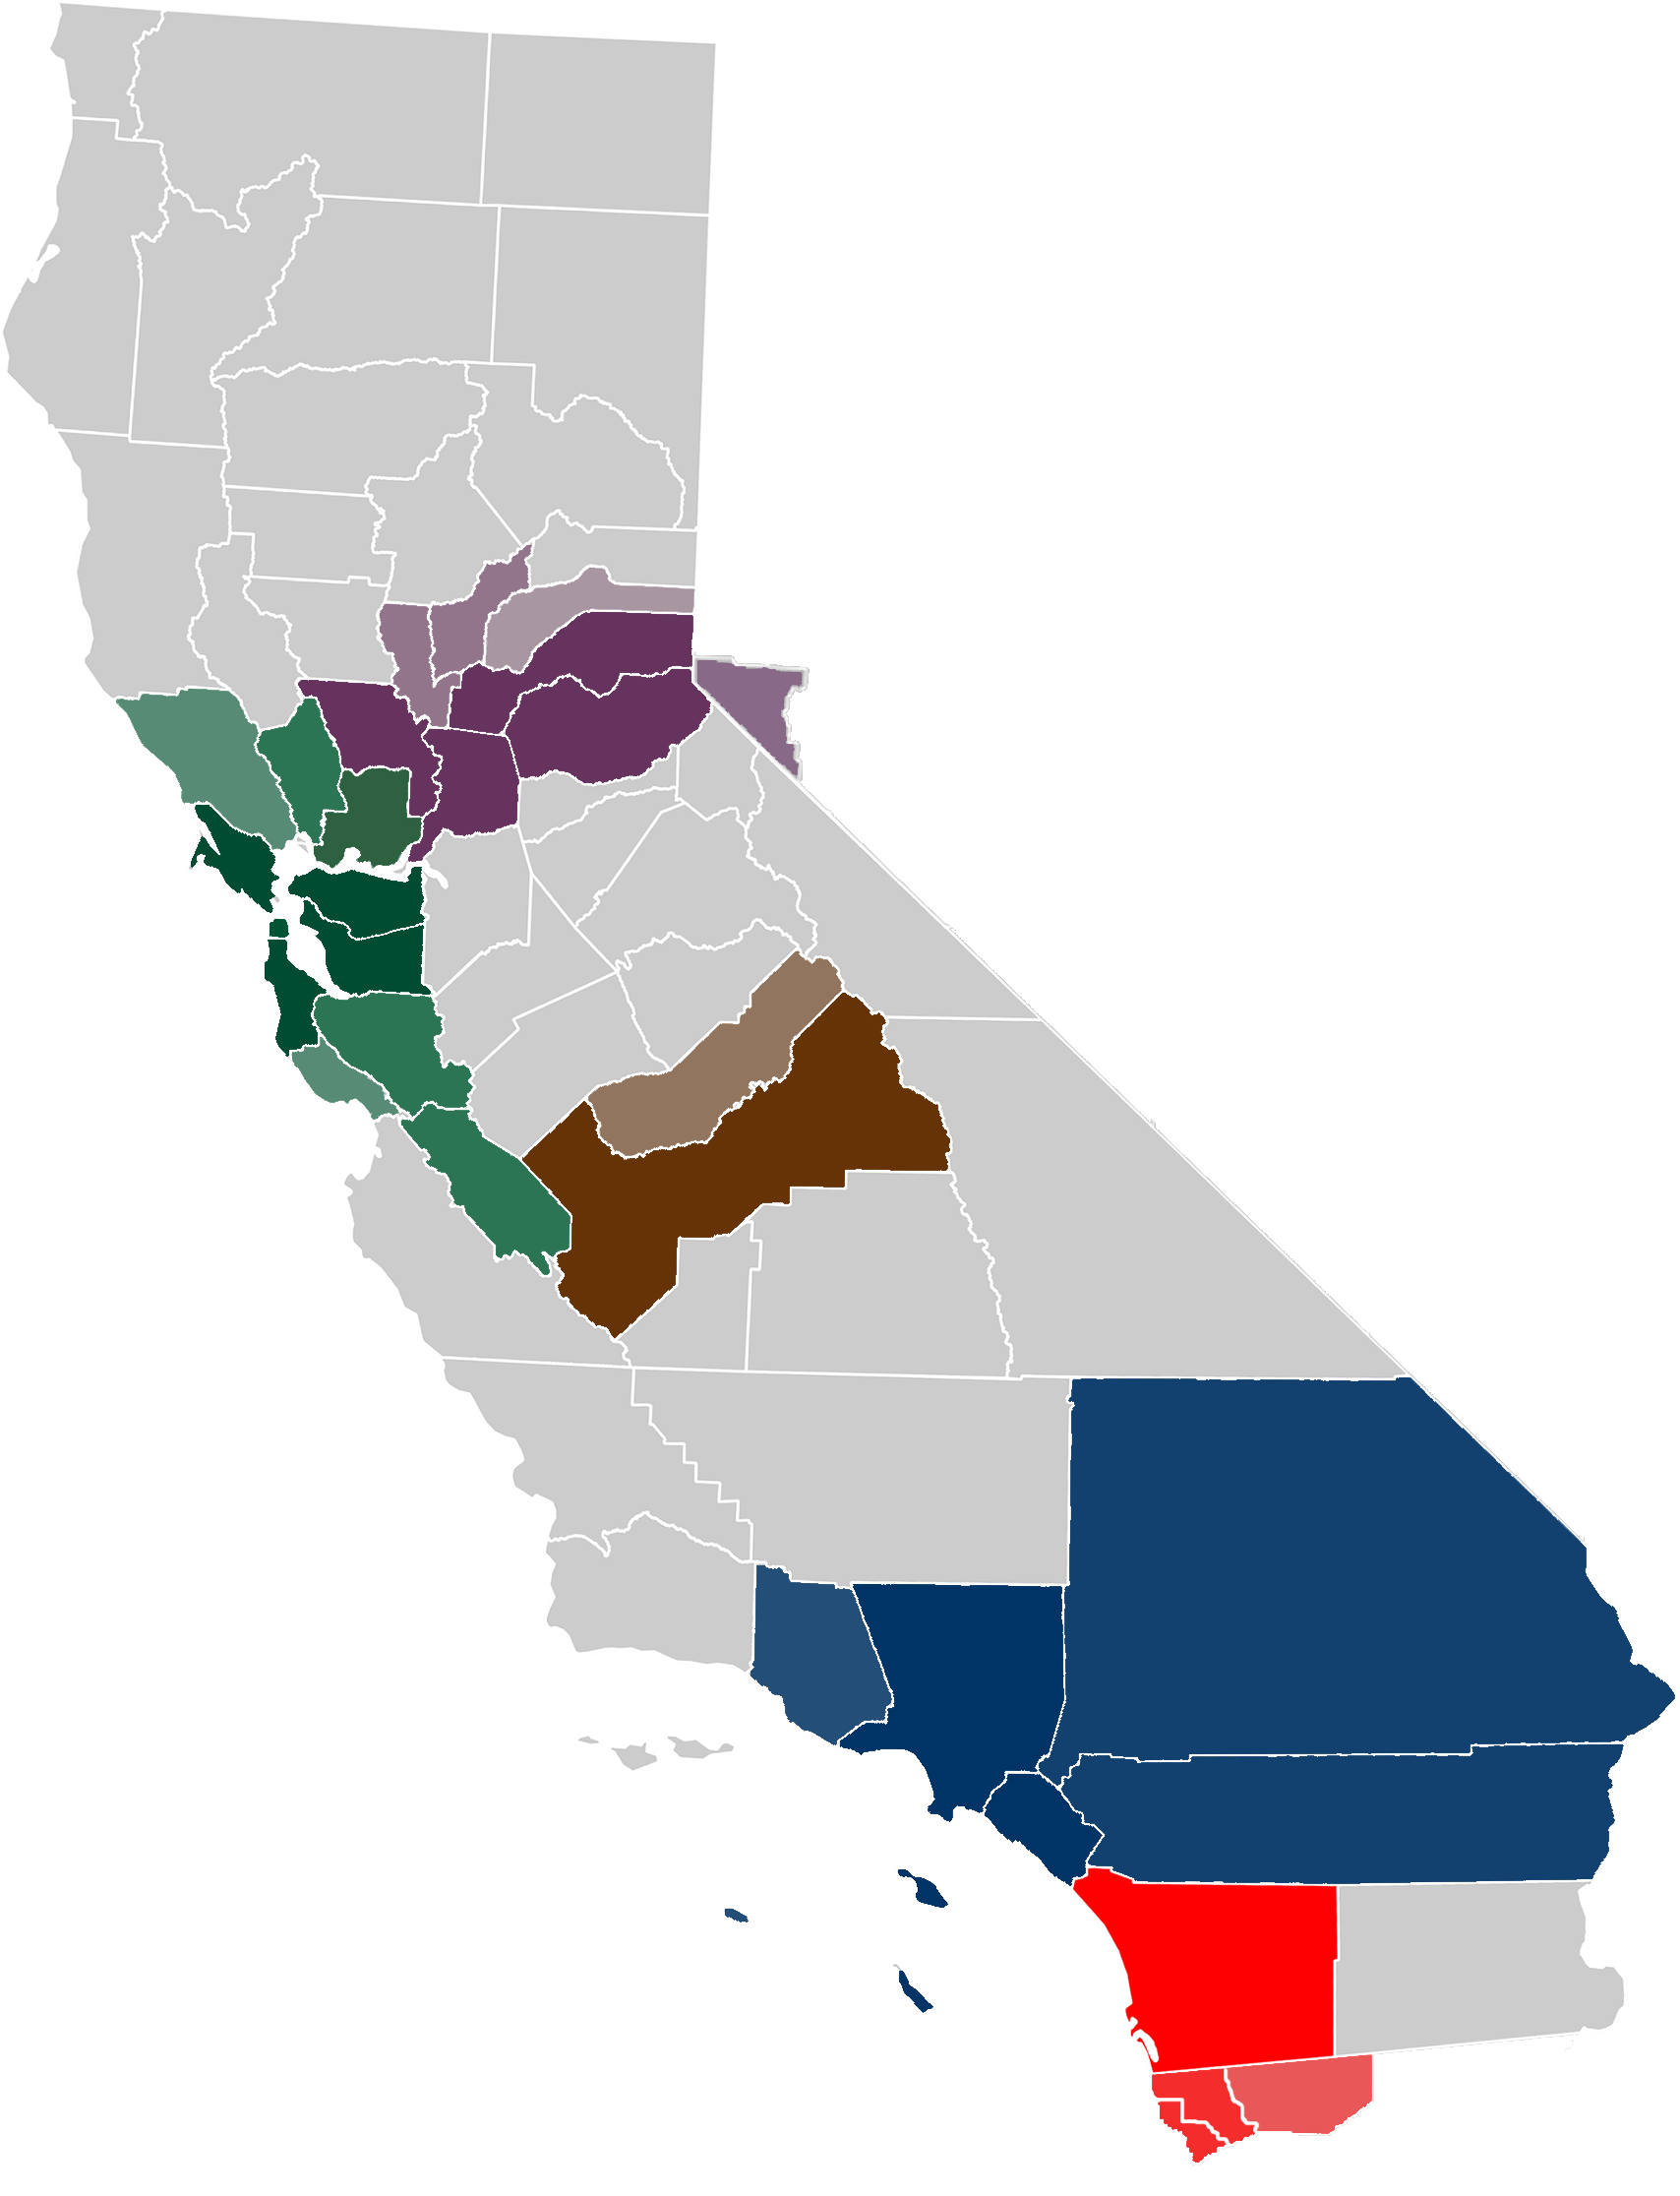 California map png. File extended metropolitan areas